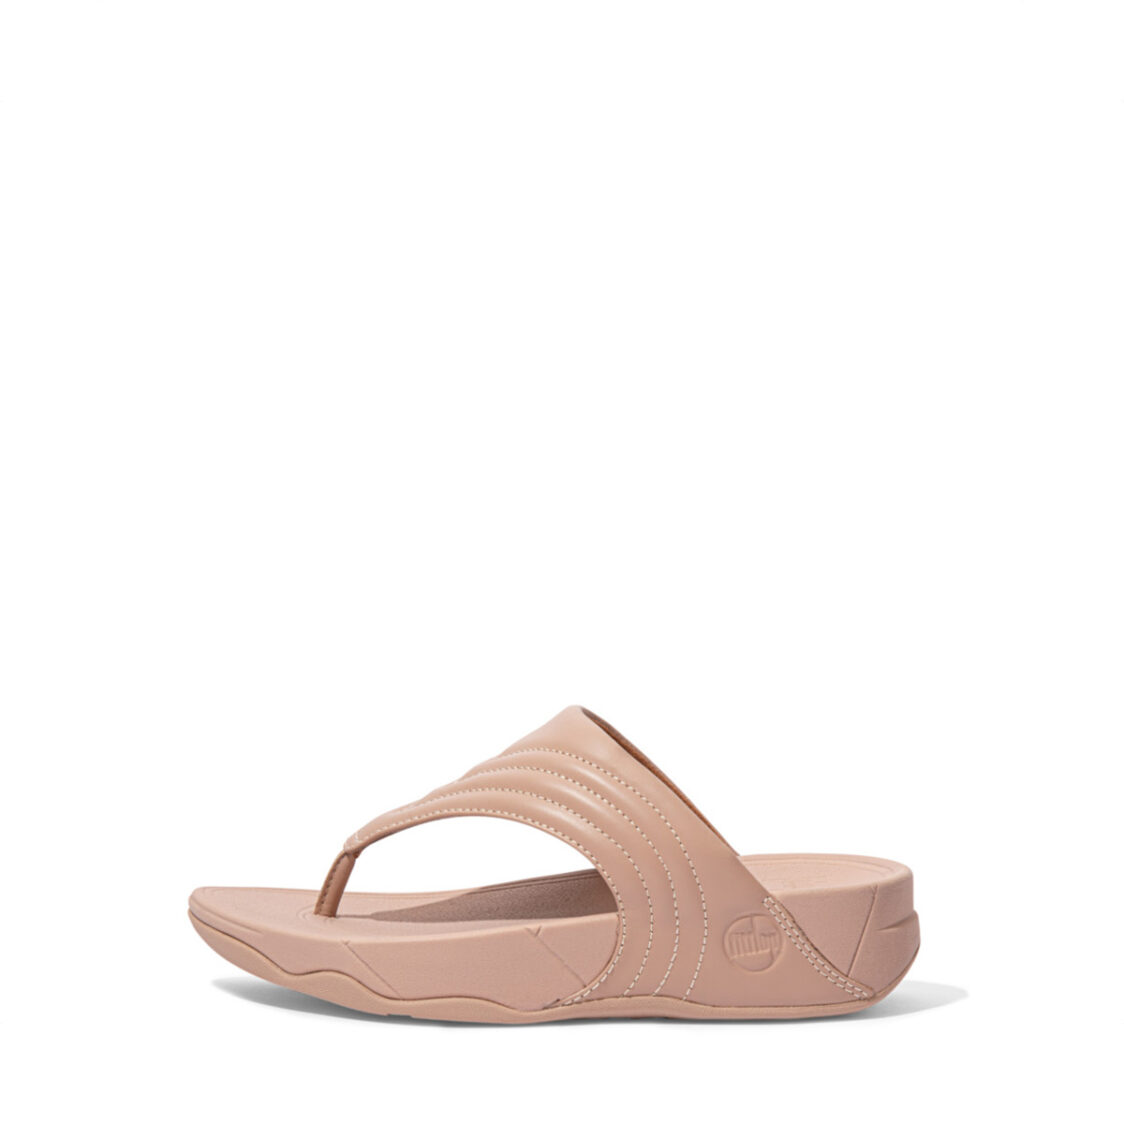 Fitflop Walkstar Leather Toe-Post Sandals Beige Dx5-137